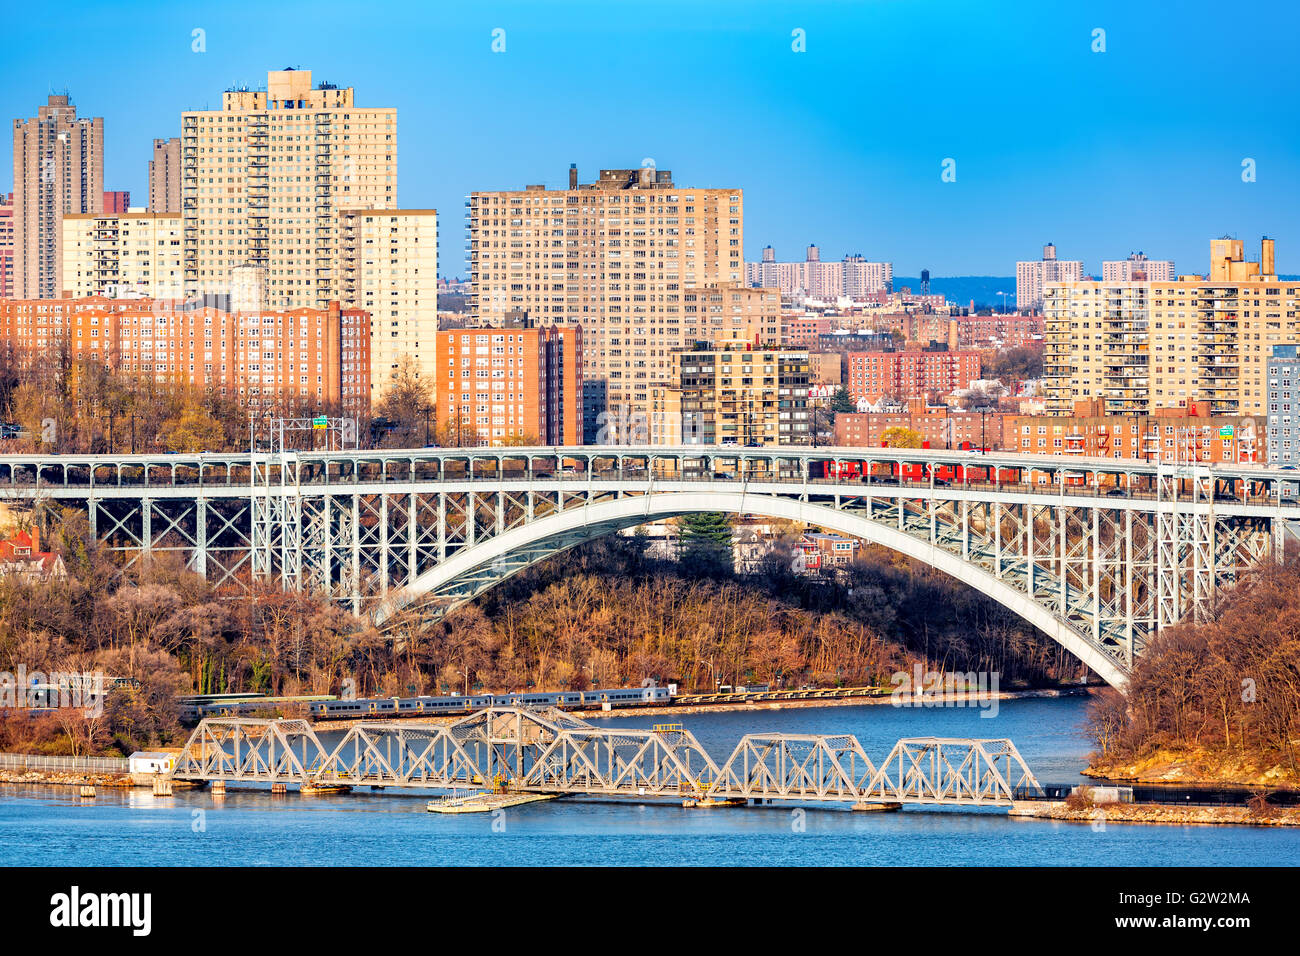 Henry Hudson Bridge spans Spuyten Duyvel Creek, in New York City - Stock Image